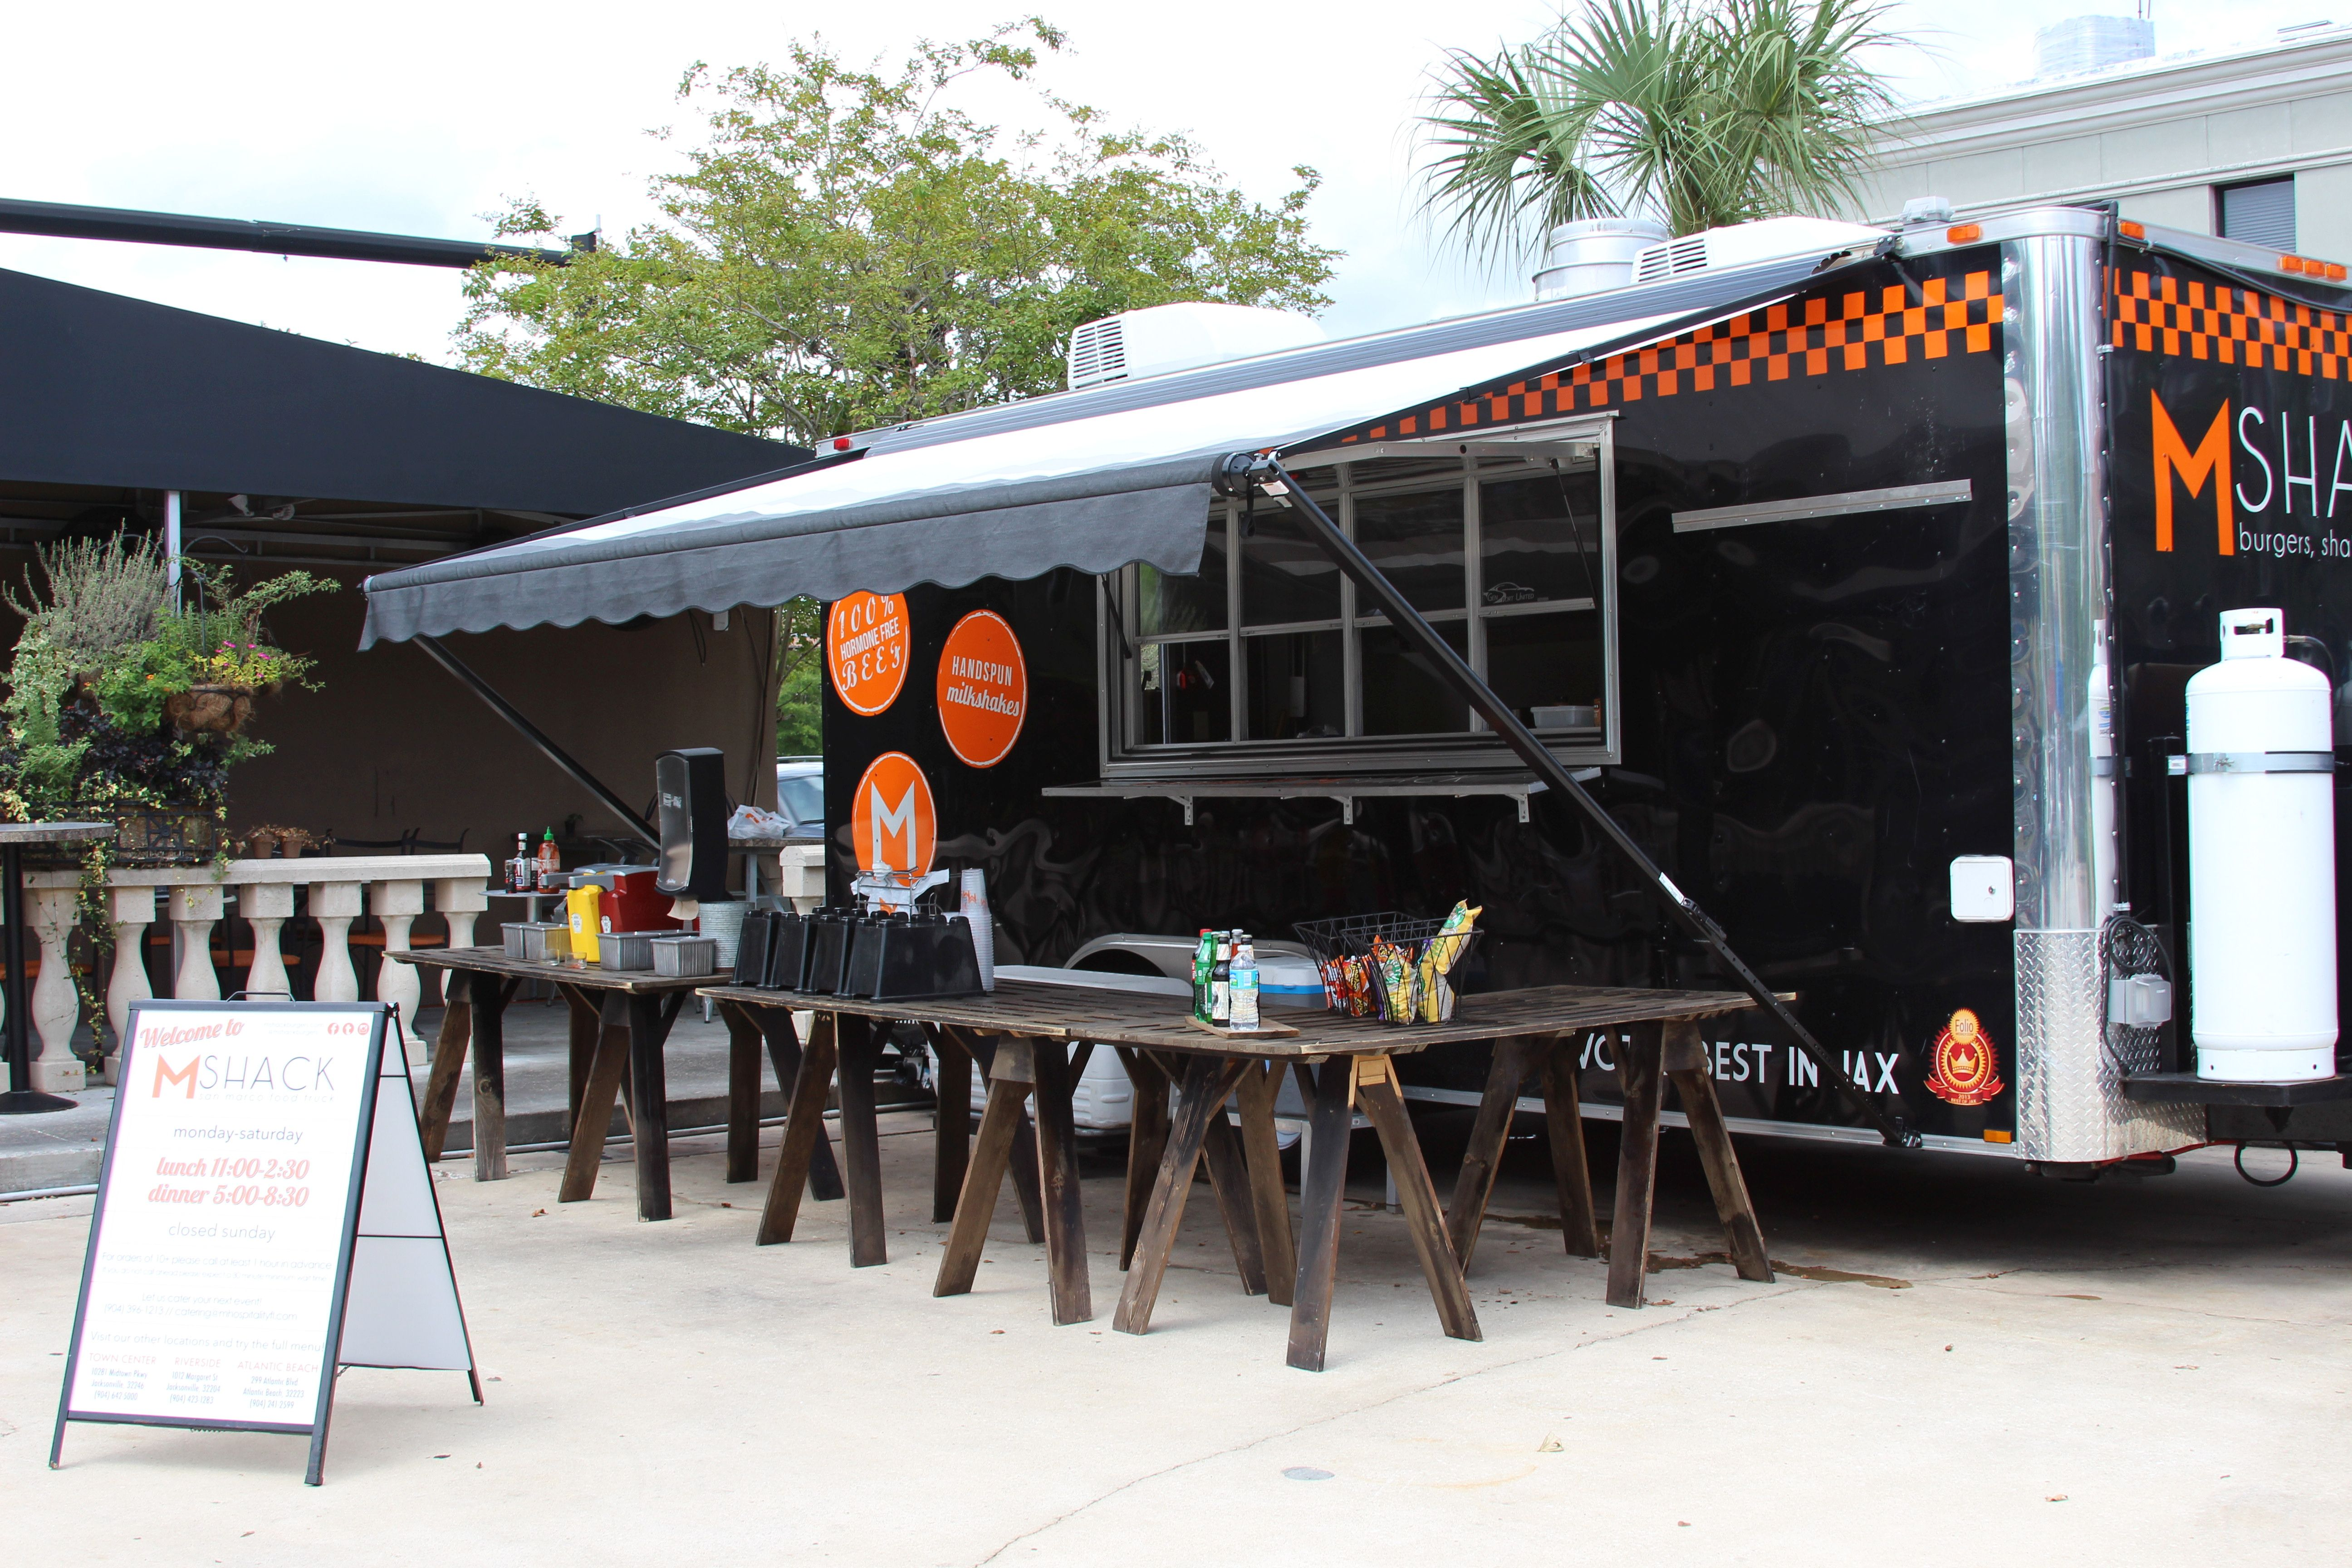 Burger Joint's Mobile Kitchen Expands Brand